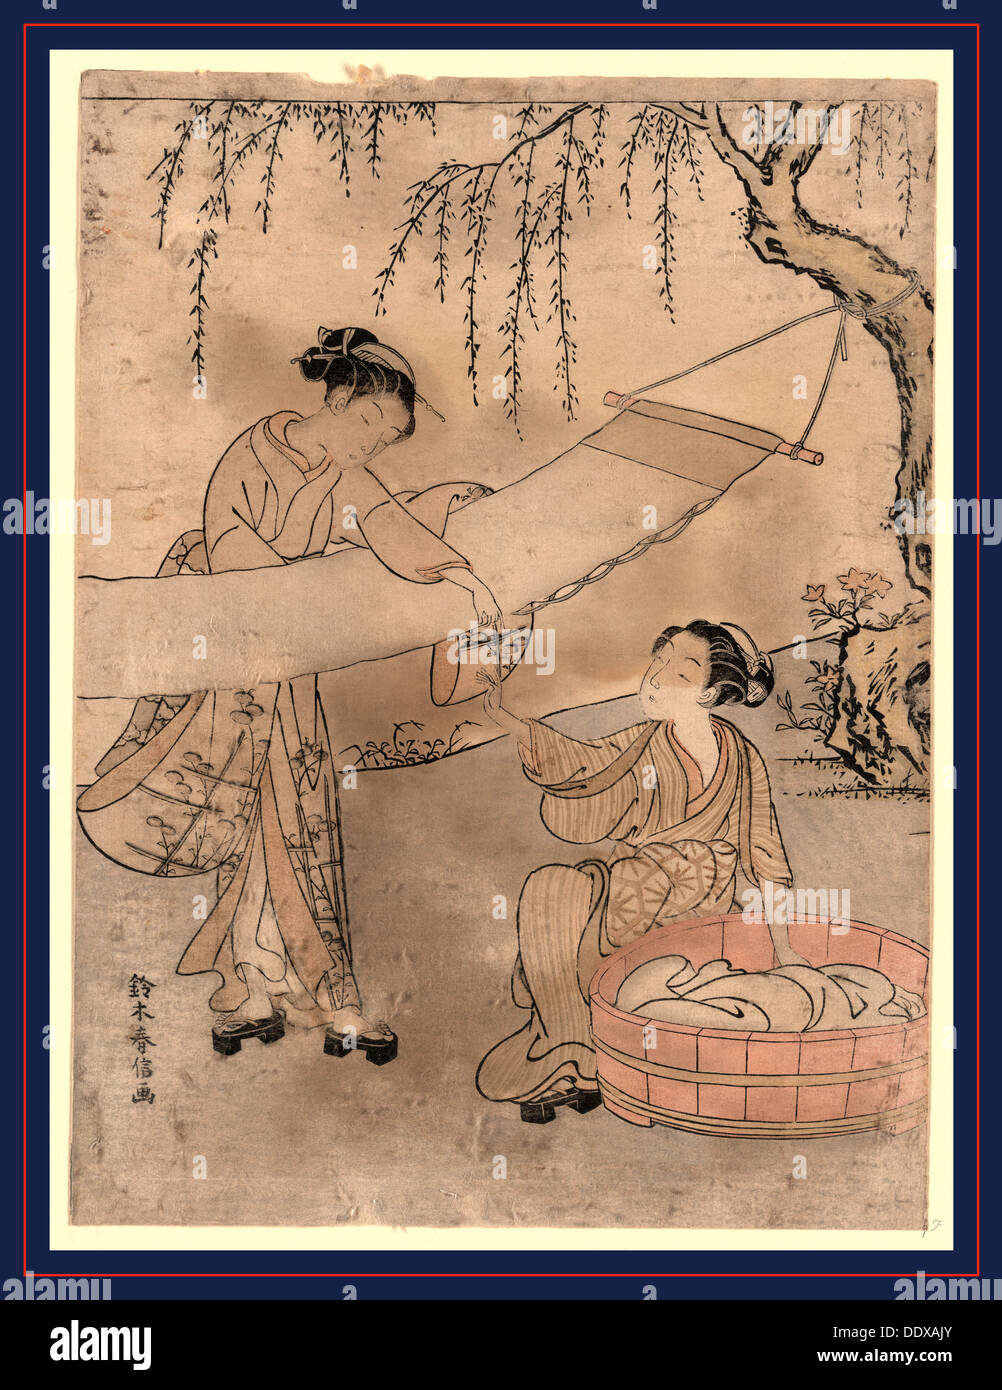 Araihari, Washing and stretching cloth. [between 1767 and 1769], 1 print : woodcut, color ; 27.2 x 20.1 cm., Print shows two - Stock Image